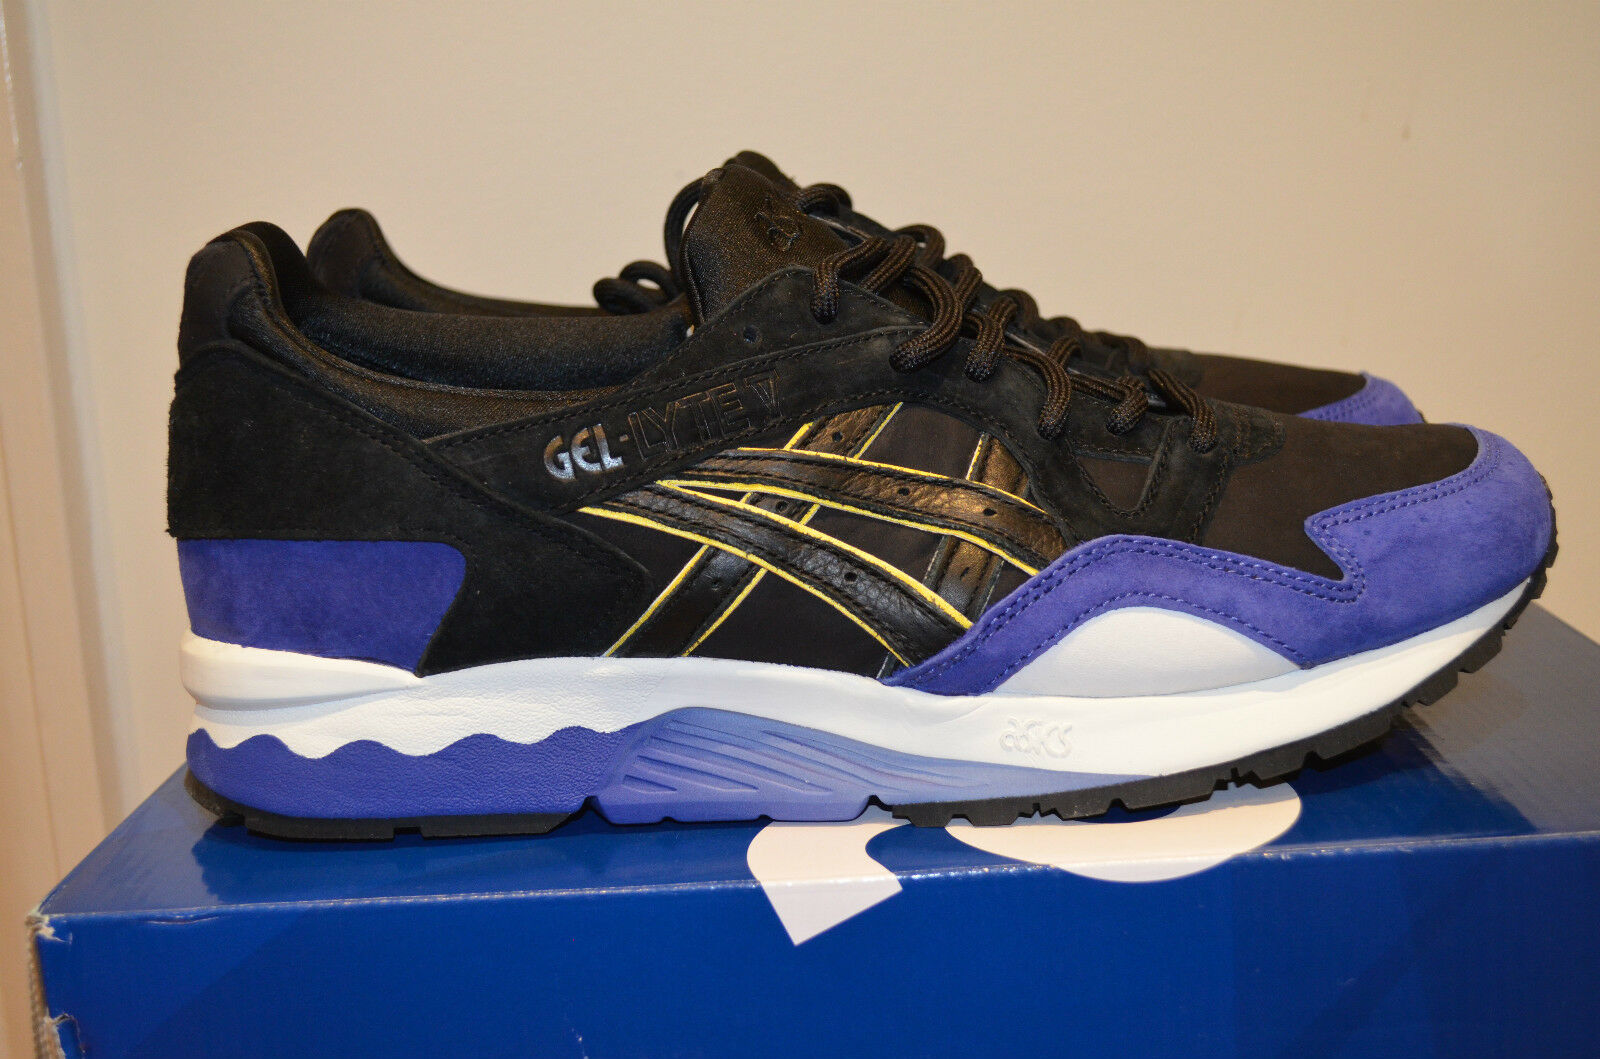 BAIT X ASICS Gel Lyte V Bay Pack - Splash City UK Size 9, 10